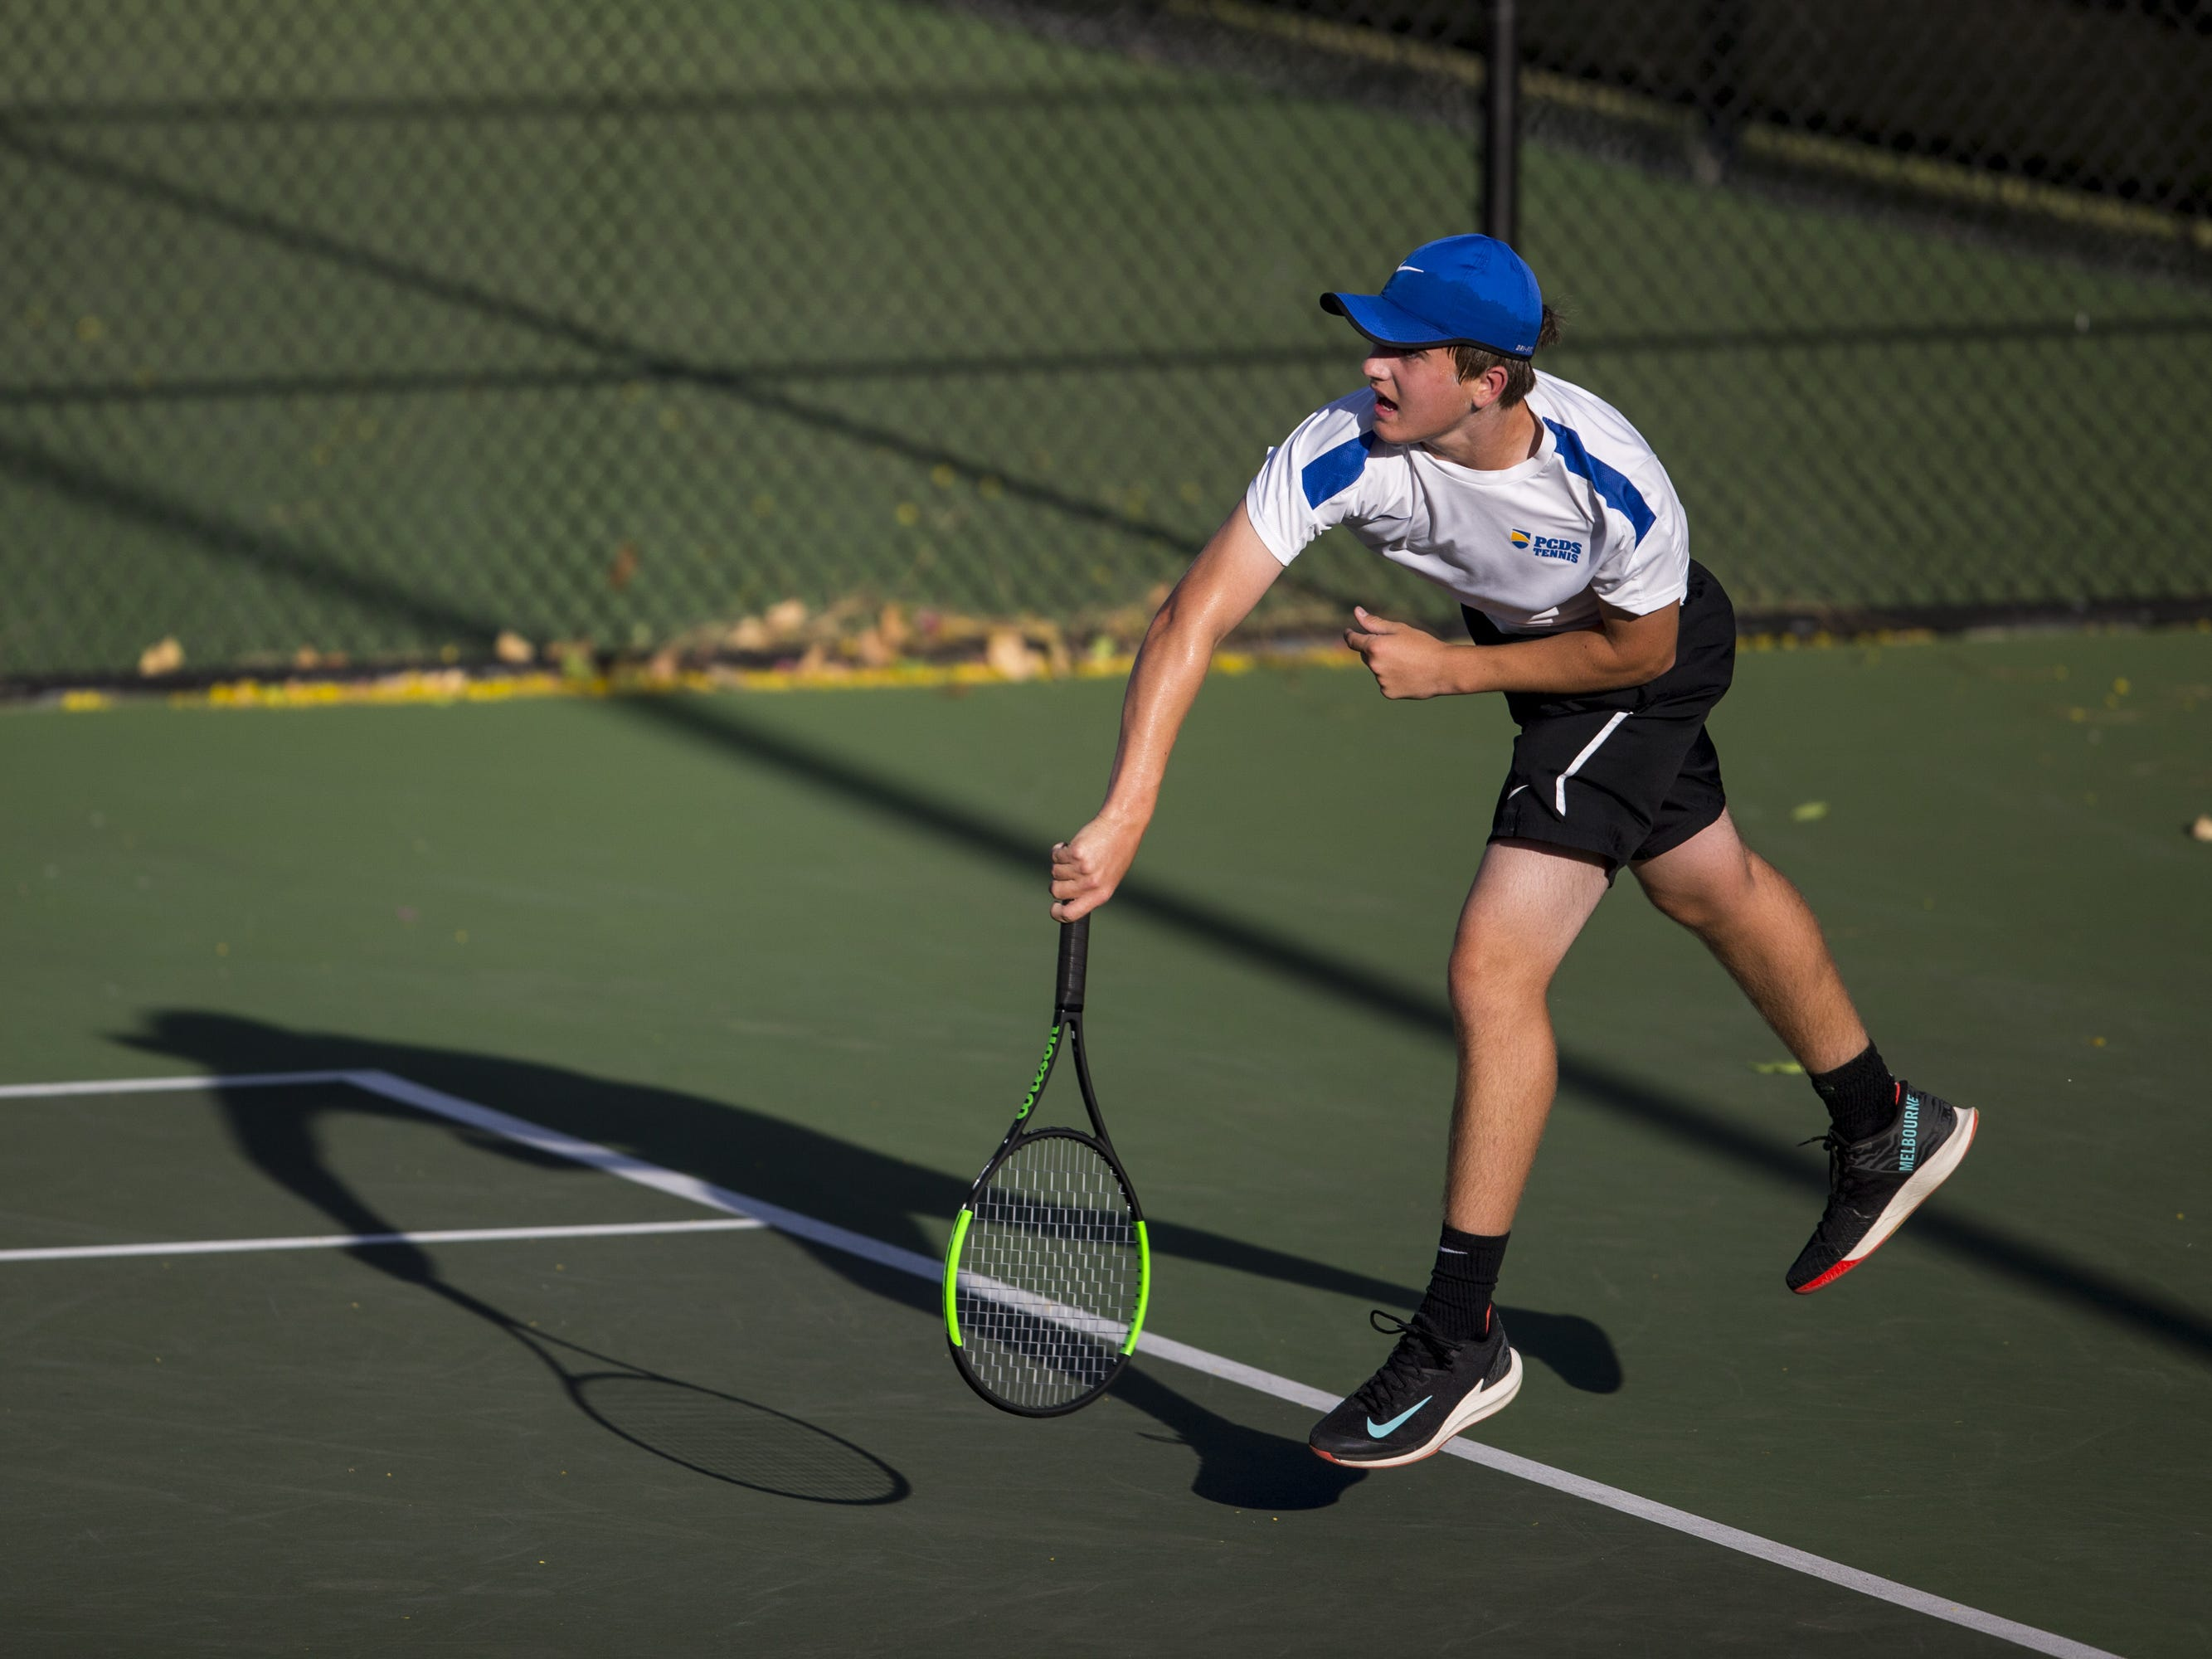 Phoenix Country Day's Ashton Kroeger serves against The Gregory School's Wilder Cooke during the Division III Boys Tennis Singles State Championship on Monday, April 29, 2019, at Whiteman Tennis Center in Tempe, Ariz.